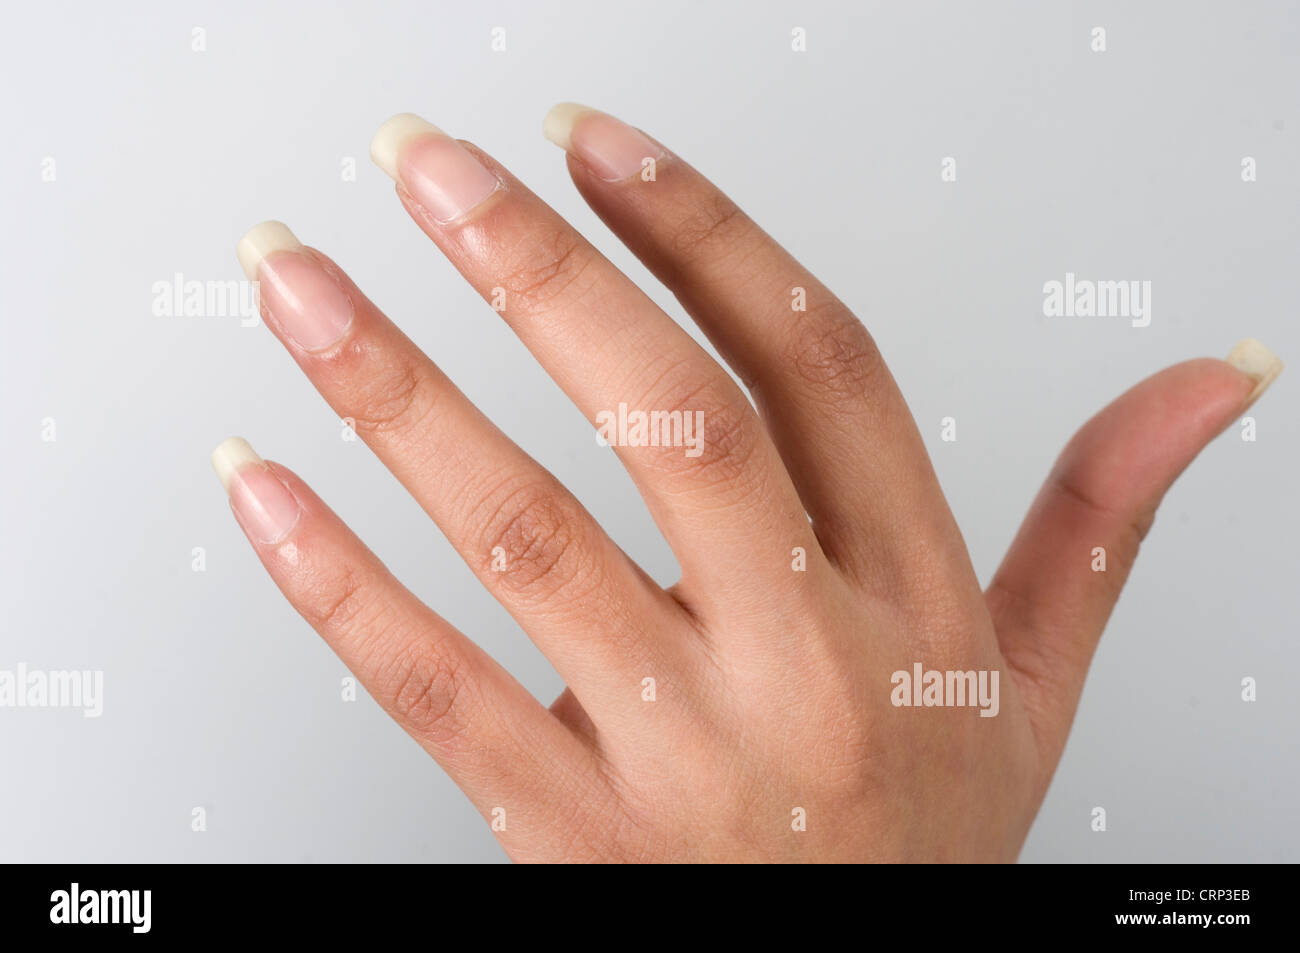 Woman's hand. - Stock Image